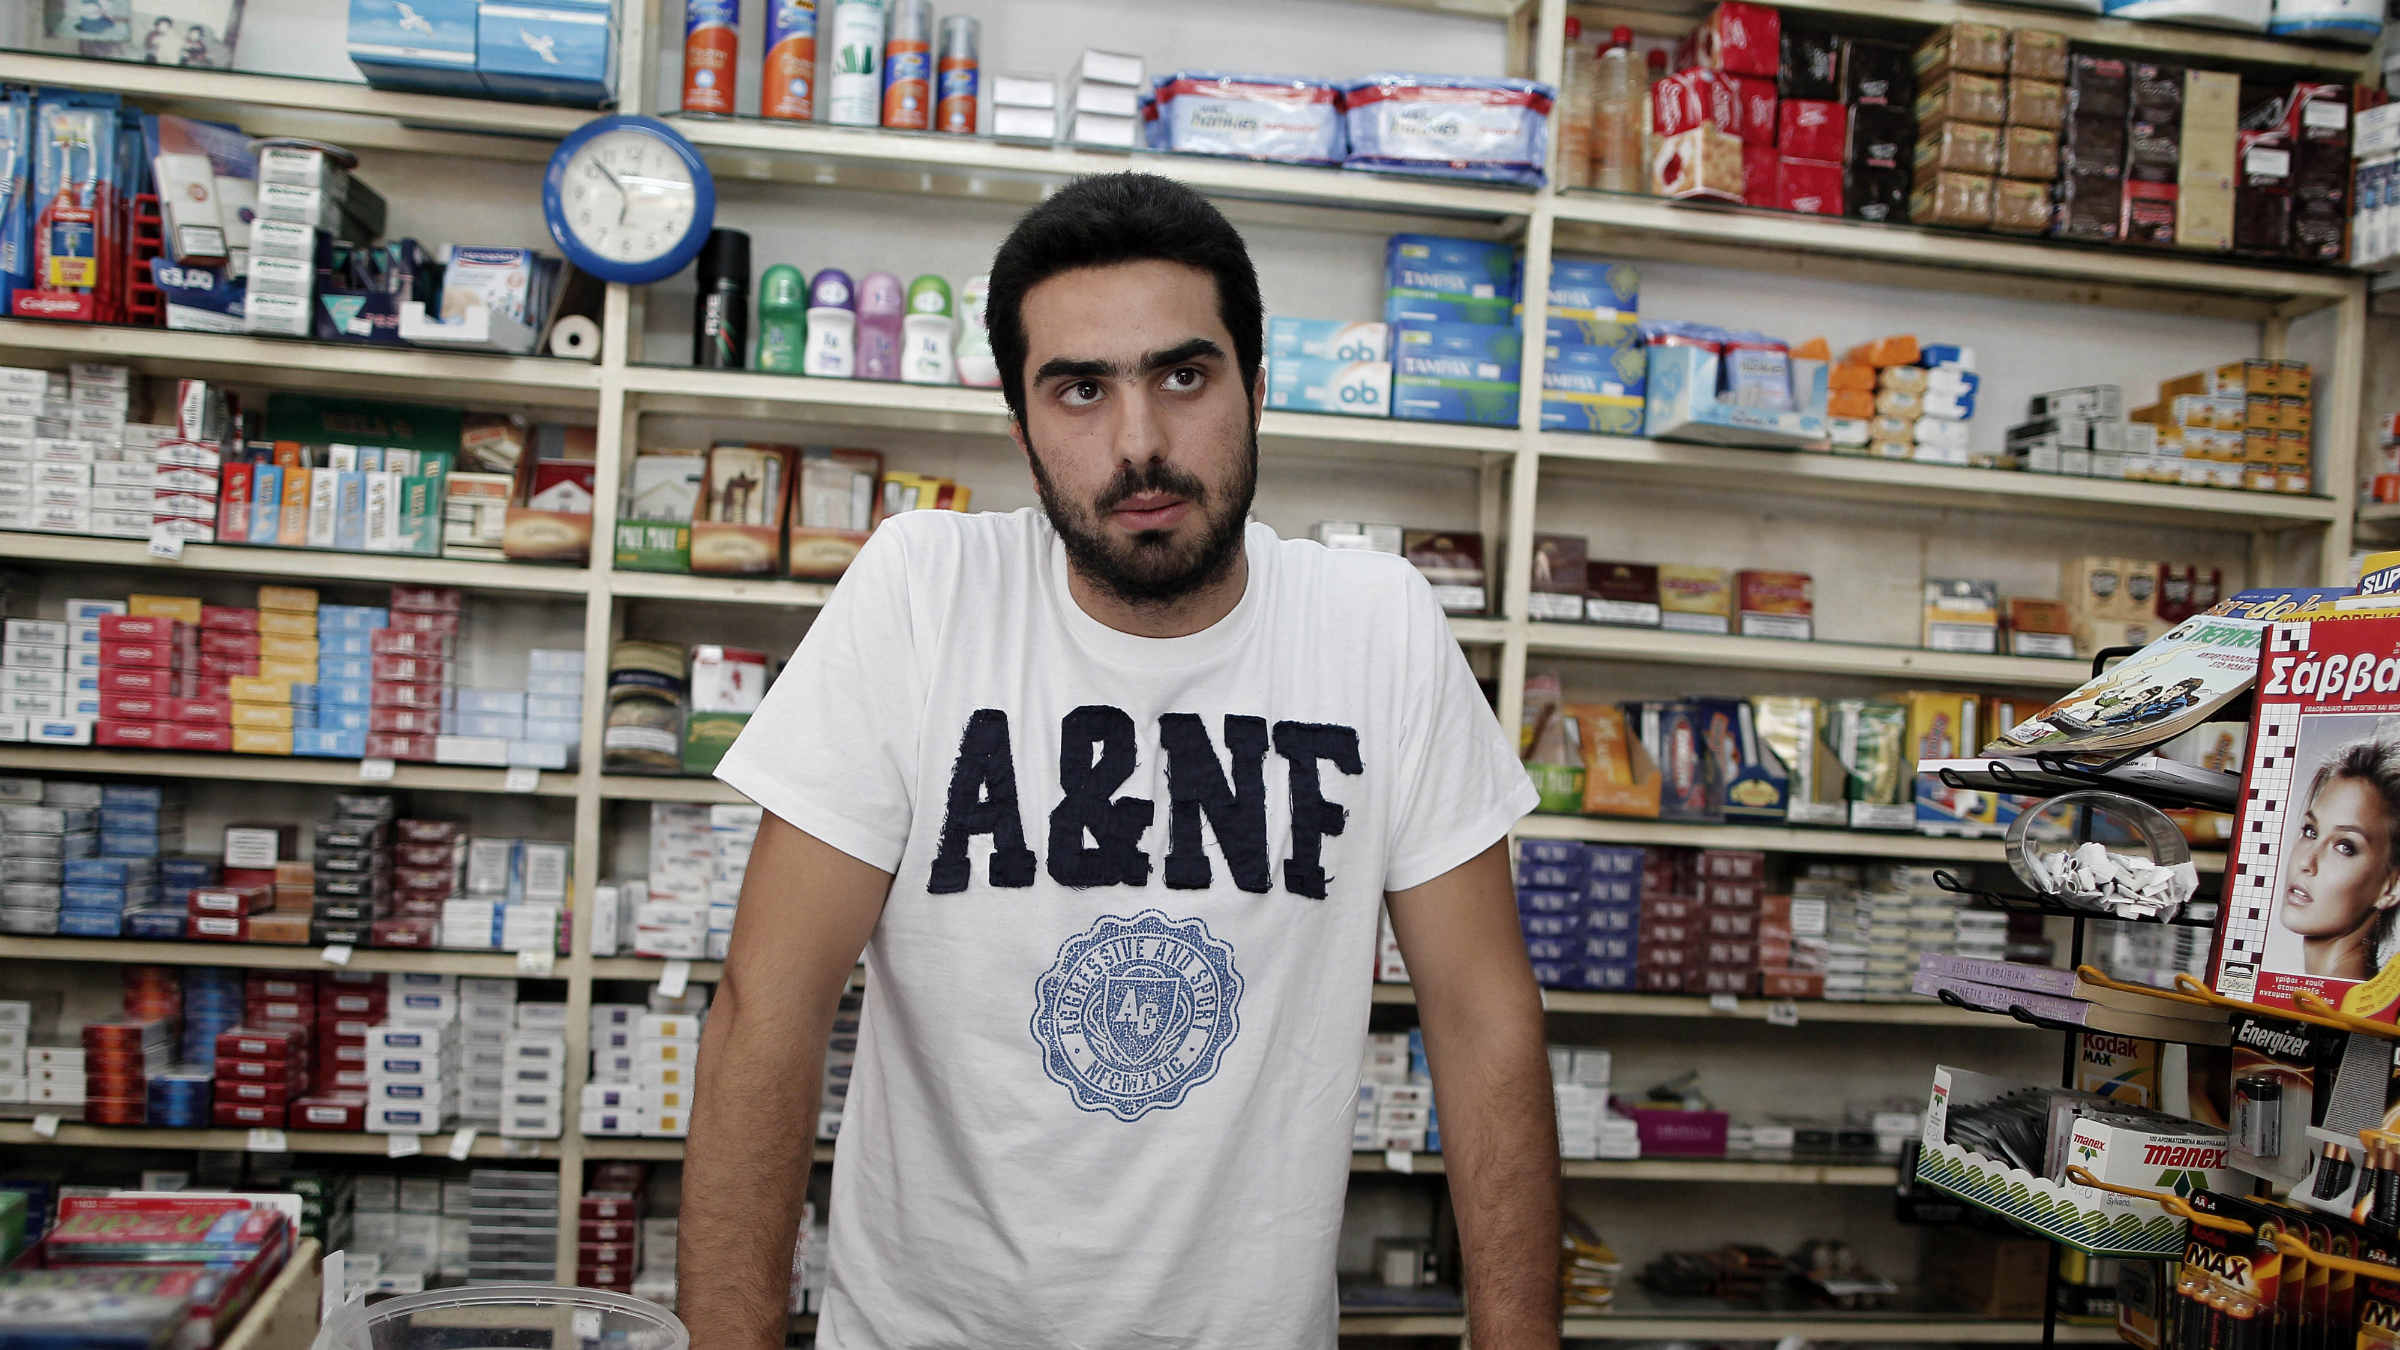 """Dimitris Dedoussis, 20, stands at the counter of his corner shop near Syntagma Square in central Athens, on Thursday, Aug. 23, 2012. As Greek Prime Minister Antonis Samaras sets off around Europe to plead for more time to achieve the country's tough reform targets, austerity-weary Greeks are bracing for new pain but mostly expect to stay in the 17-nation eurozone, come what may. Dedoussis said planned new cutbacks would have severe consequences on Greece's battered middle class, adding that he expects protests sooner or later because people won't be able to cope. He said he does not expect the debt-crippled country's partners will be able to kick Greece out of the currency union, and will instead """"seek ways of taking the last euro left in our pockets.""""(AP Photo/Dimitris Dedoussis, 20, stands at the counter of his corner shop near Syntagma Square in central Athens, on Thursday, Aug. 23, 2012. As Greek Prime Minister Antonis Samaras sets off around Europe to plead for more time to achieve the country's tough reform targets, austerity-weary Greeks are bracing for new pain but mostly expect to stay in the 17-nation eurozone, come what may. Dedoussis said planned new cutbacks would have severe consequences on Greece's battered middle class, adding that he expects protests sooner or later because people won't be able to cope. He said he does not expect the debt-crippled country's partners will be able to kick Greece out of the currency union, and will instead """"seek ways of taking the last euro left in our pockets.""""(AP Photo/Petros Giannakouris)Petros Giannakouris)"""